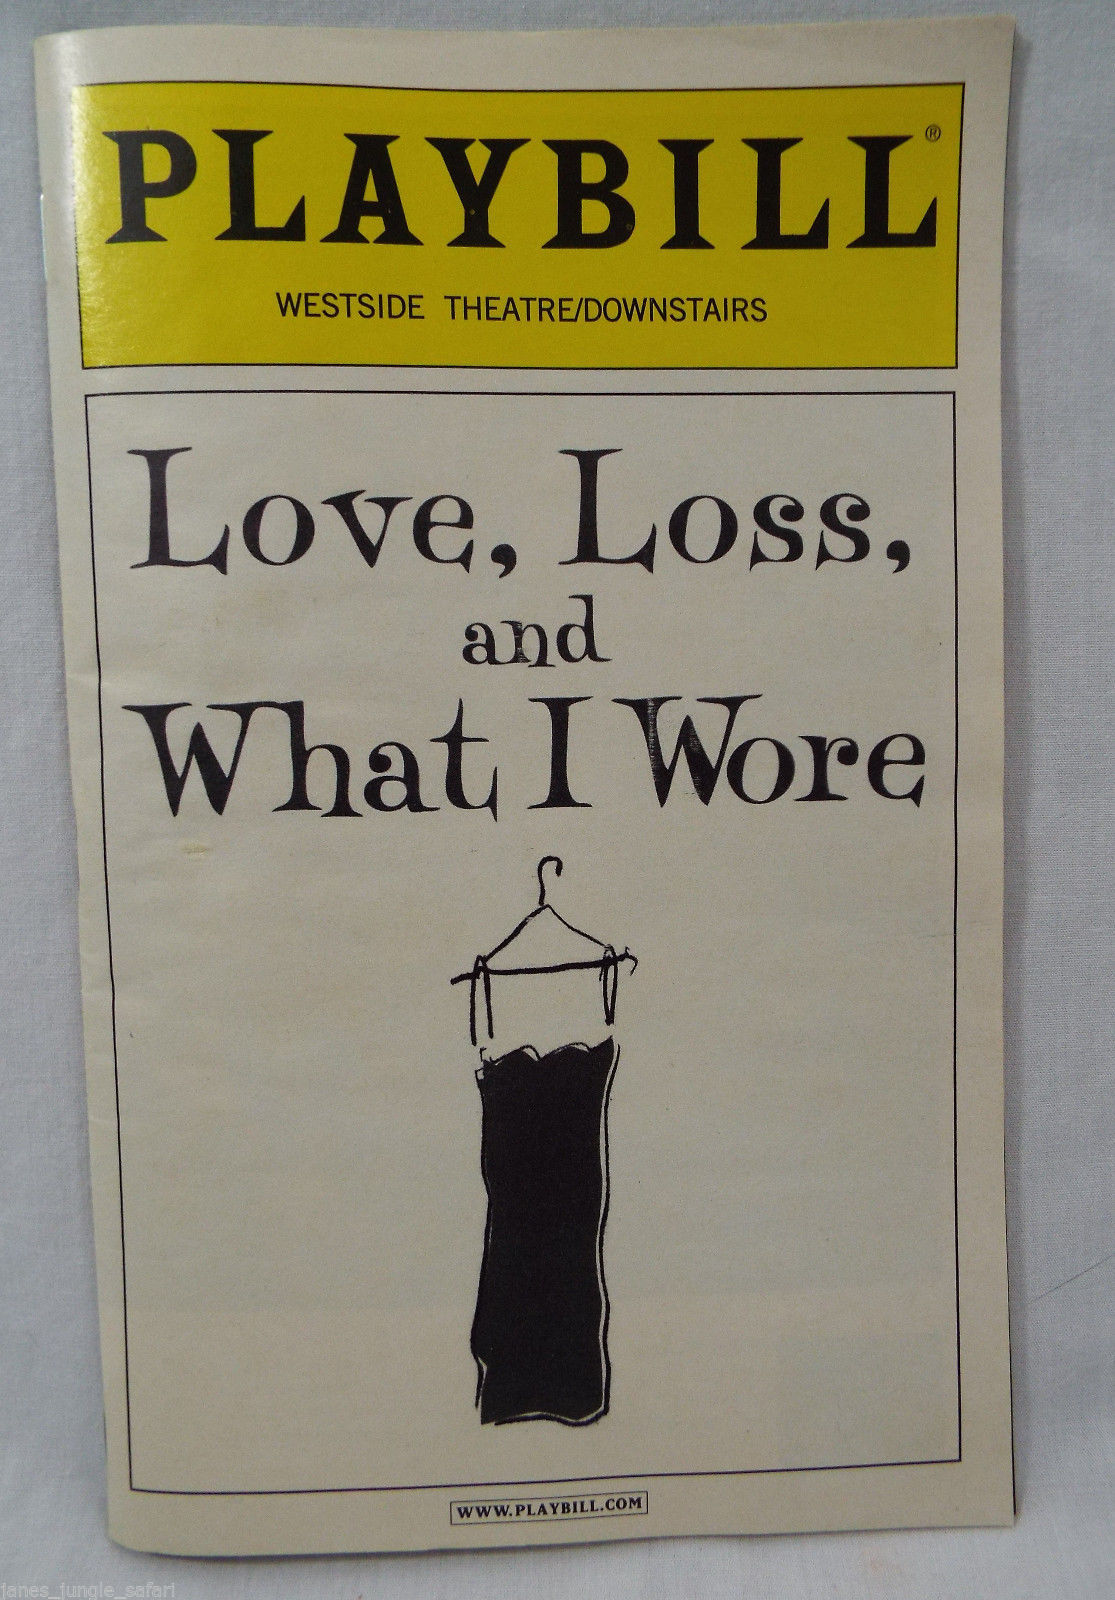 Primary image for Playbill Love, Loss, and What I Wore Westside Theater /Downstairs NYC April 2011